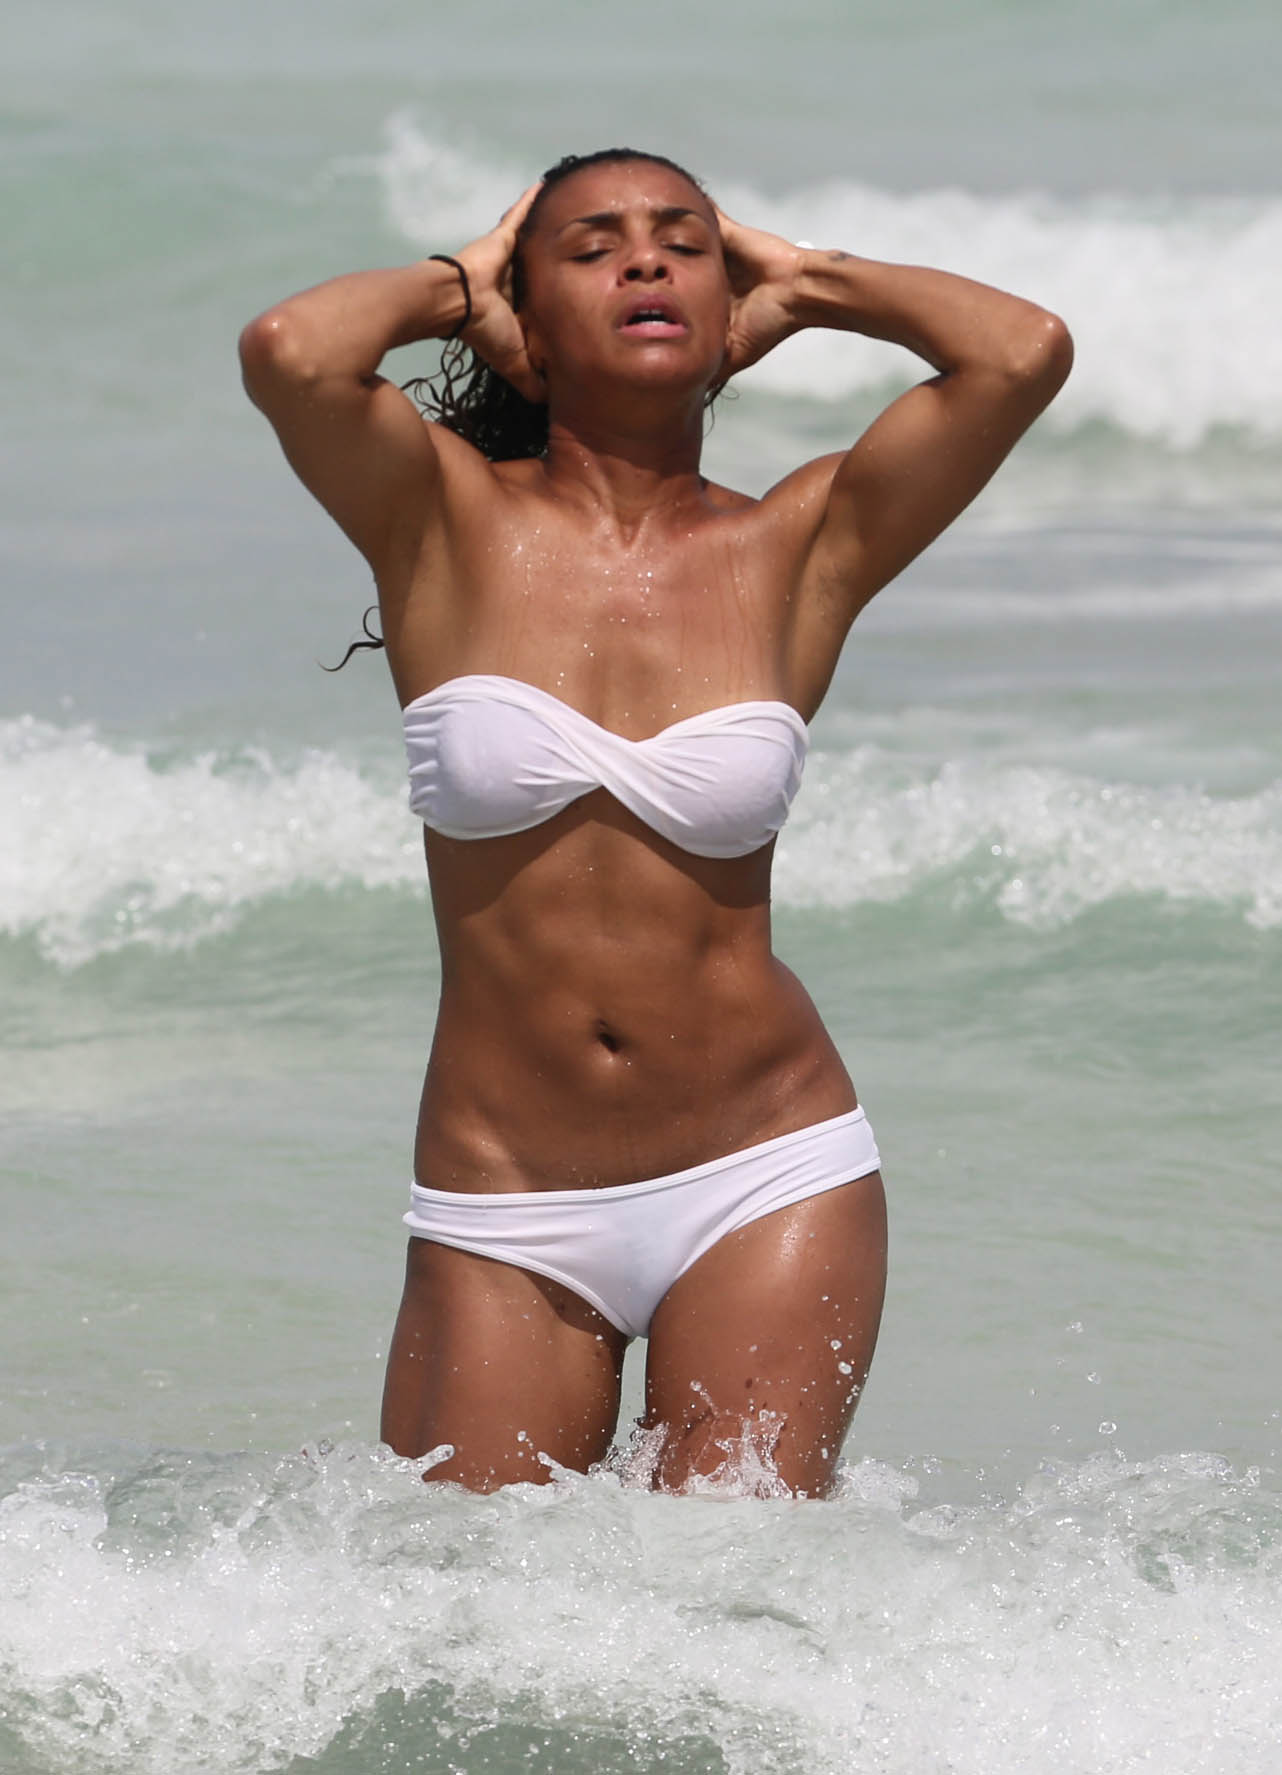 Melody thornton shows off her abs in mismatched two